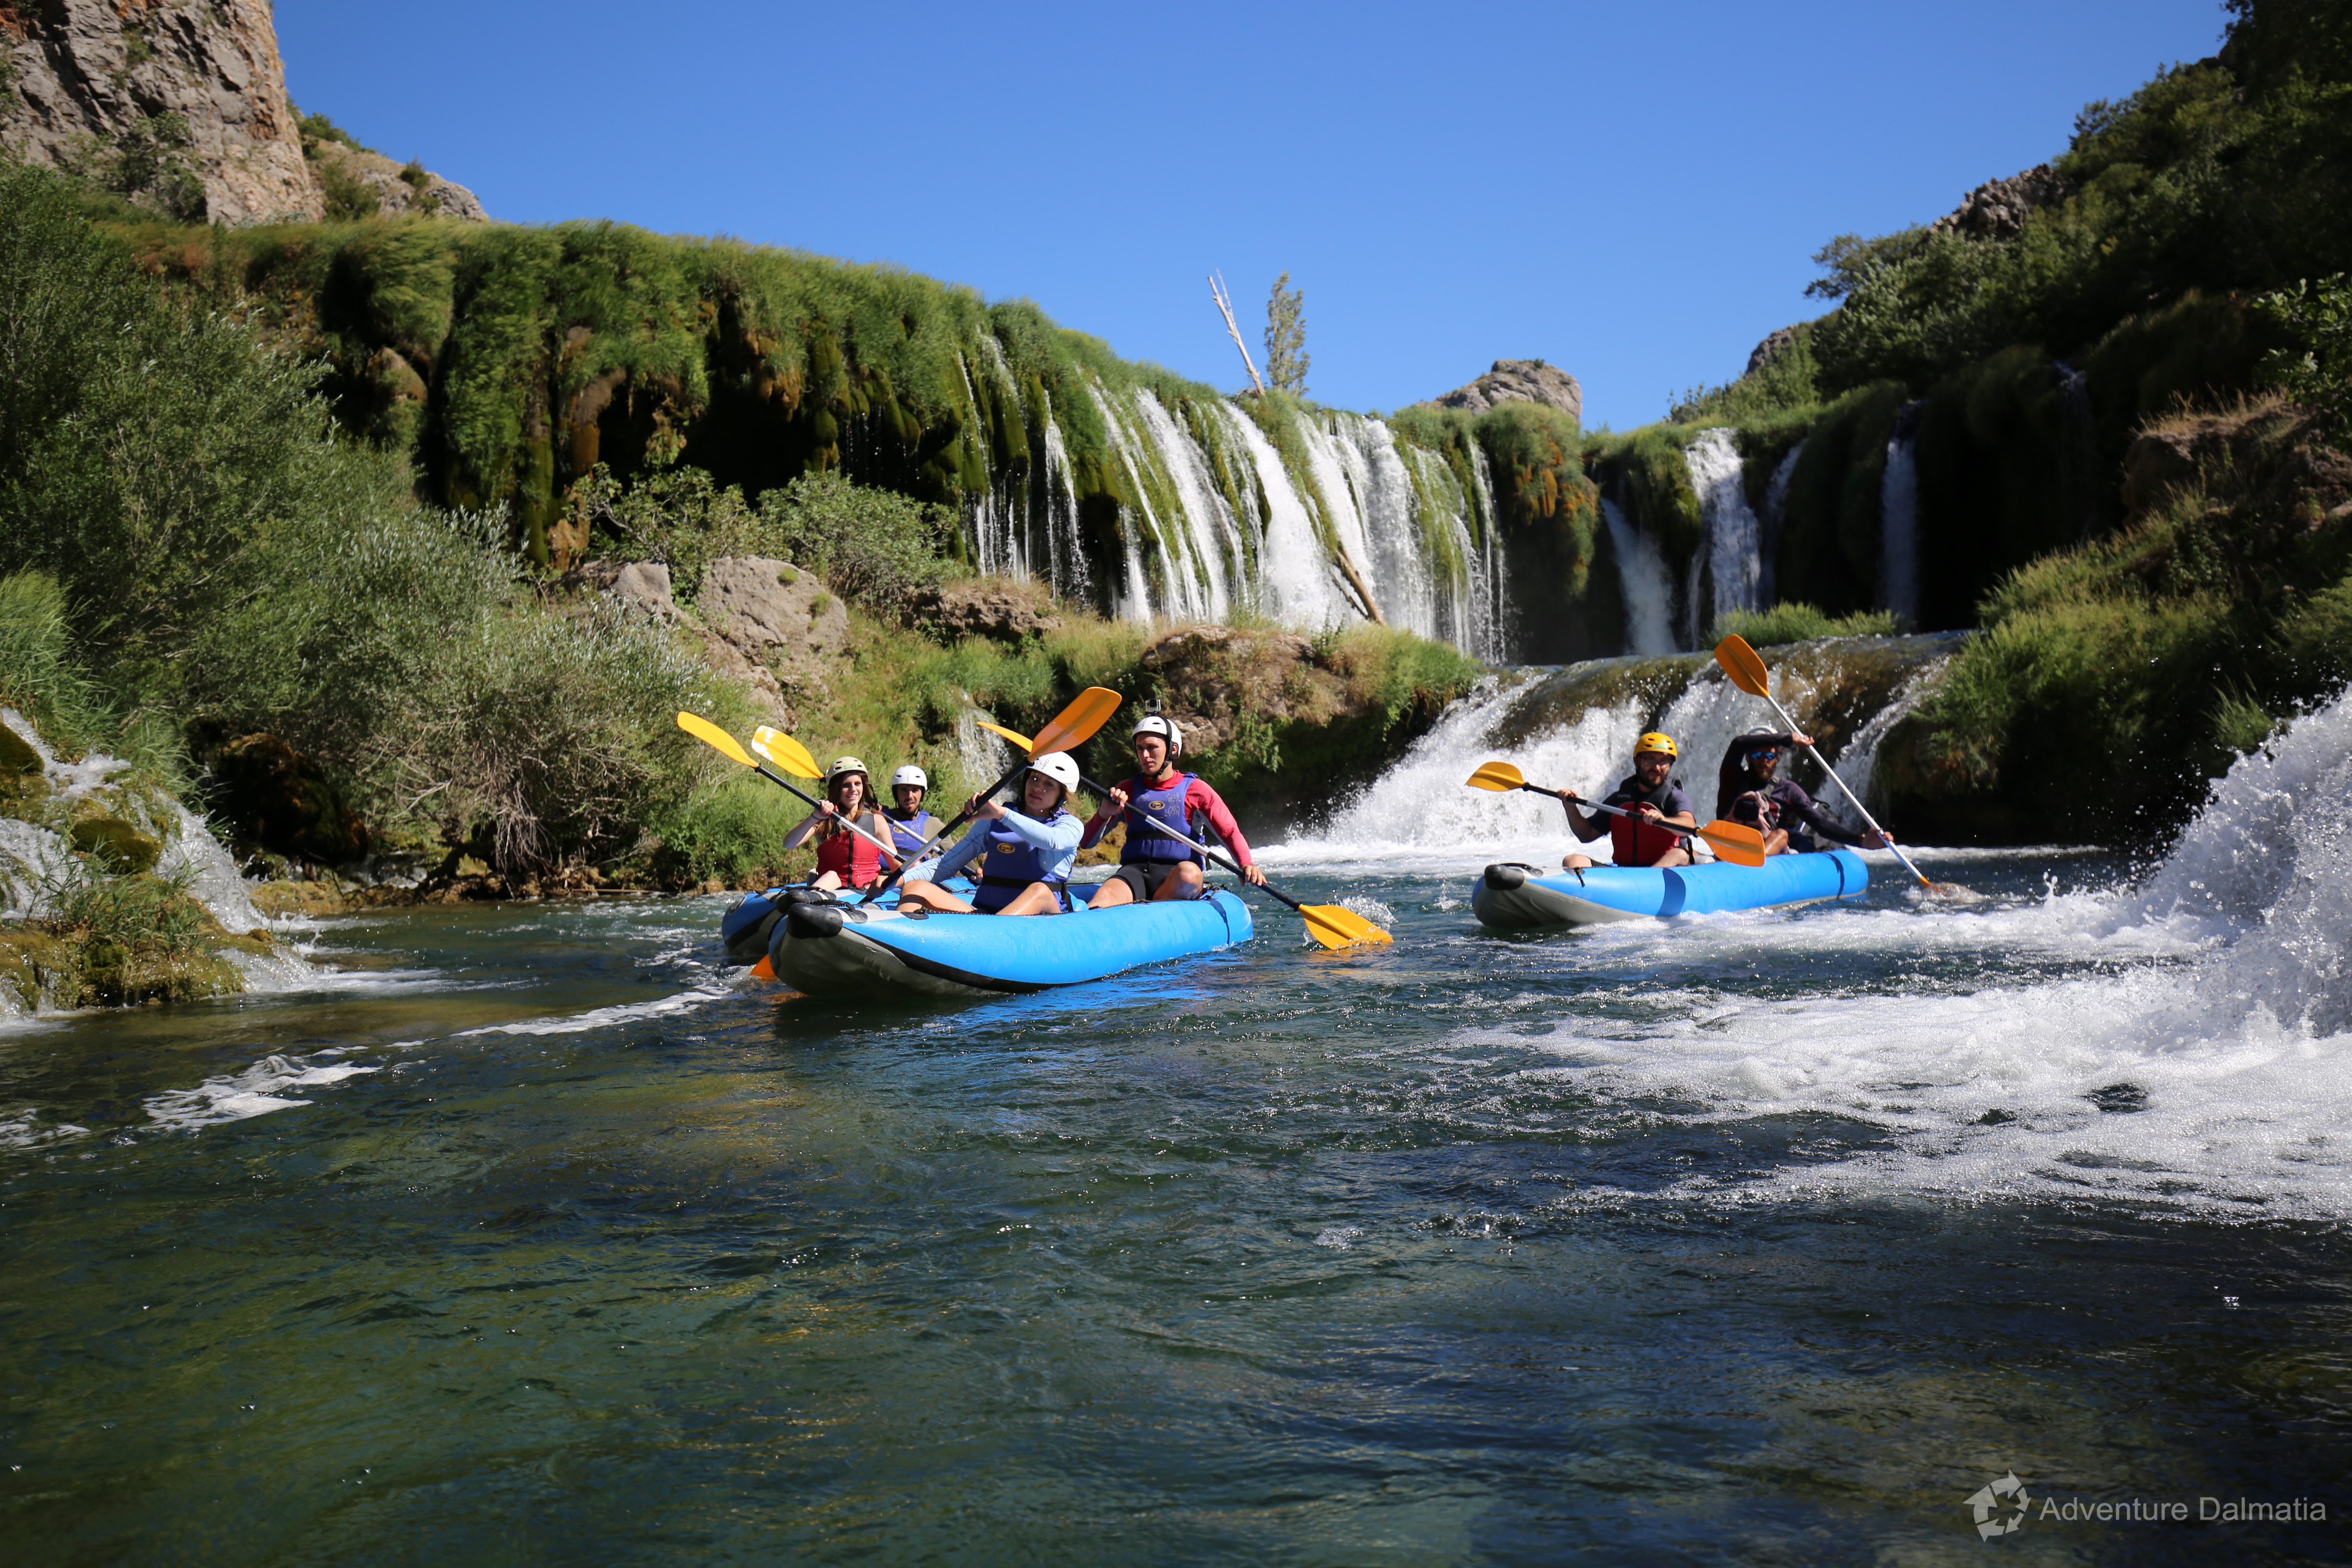 Great fun for families near Zadar!